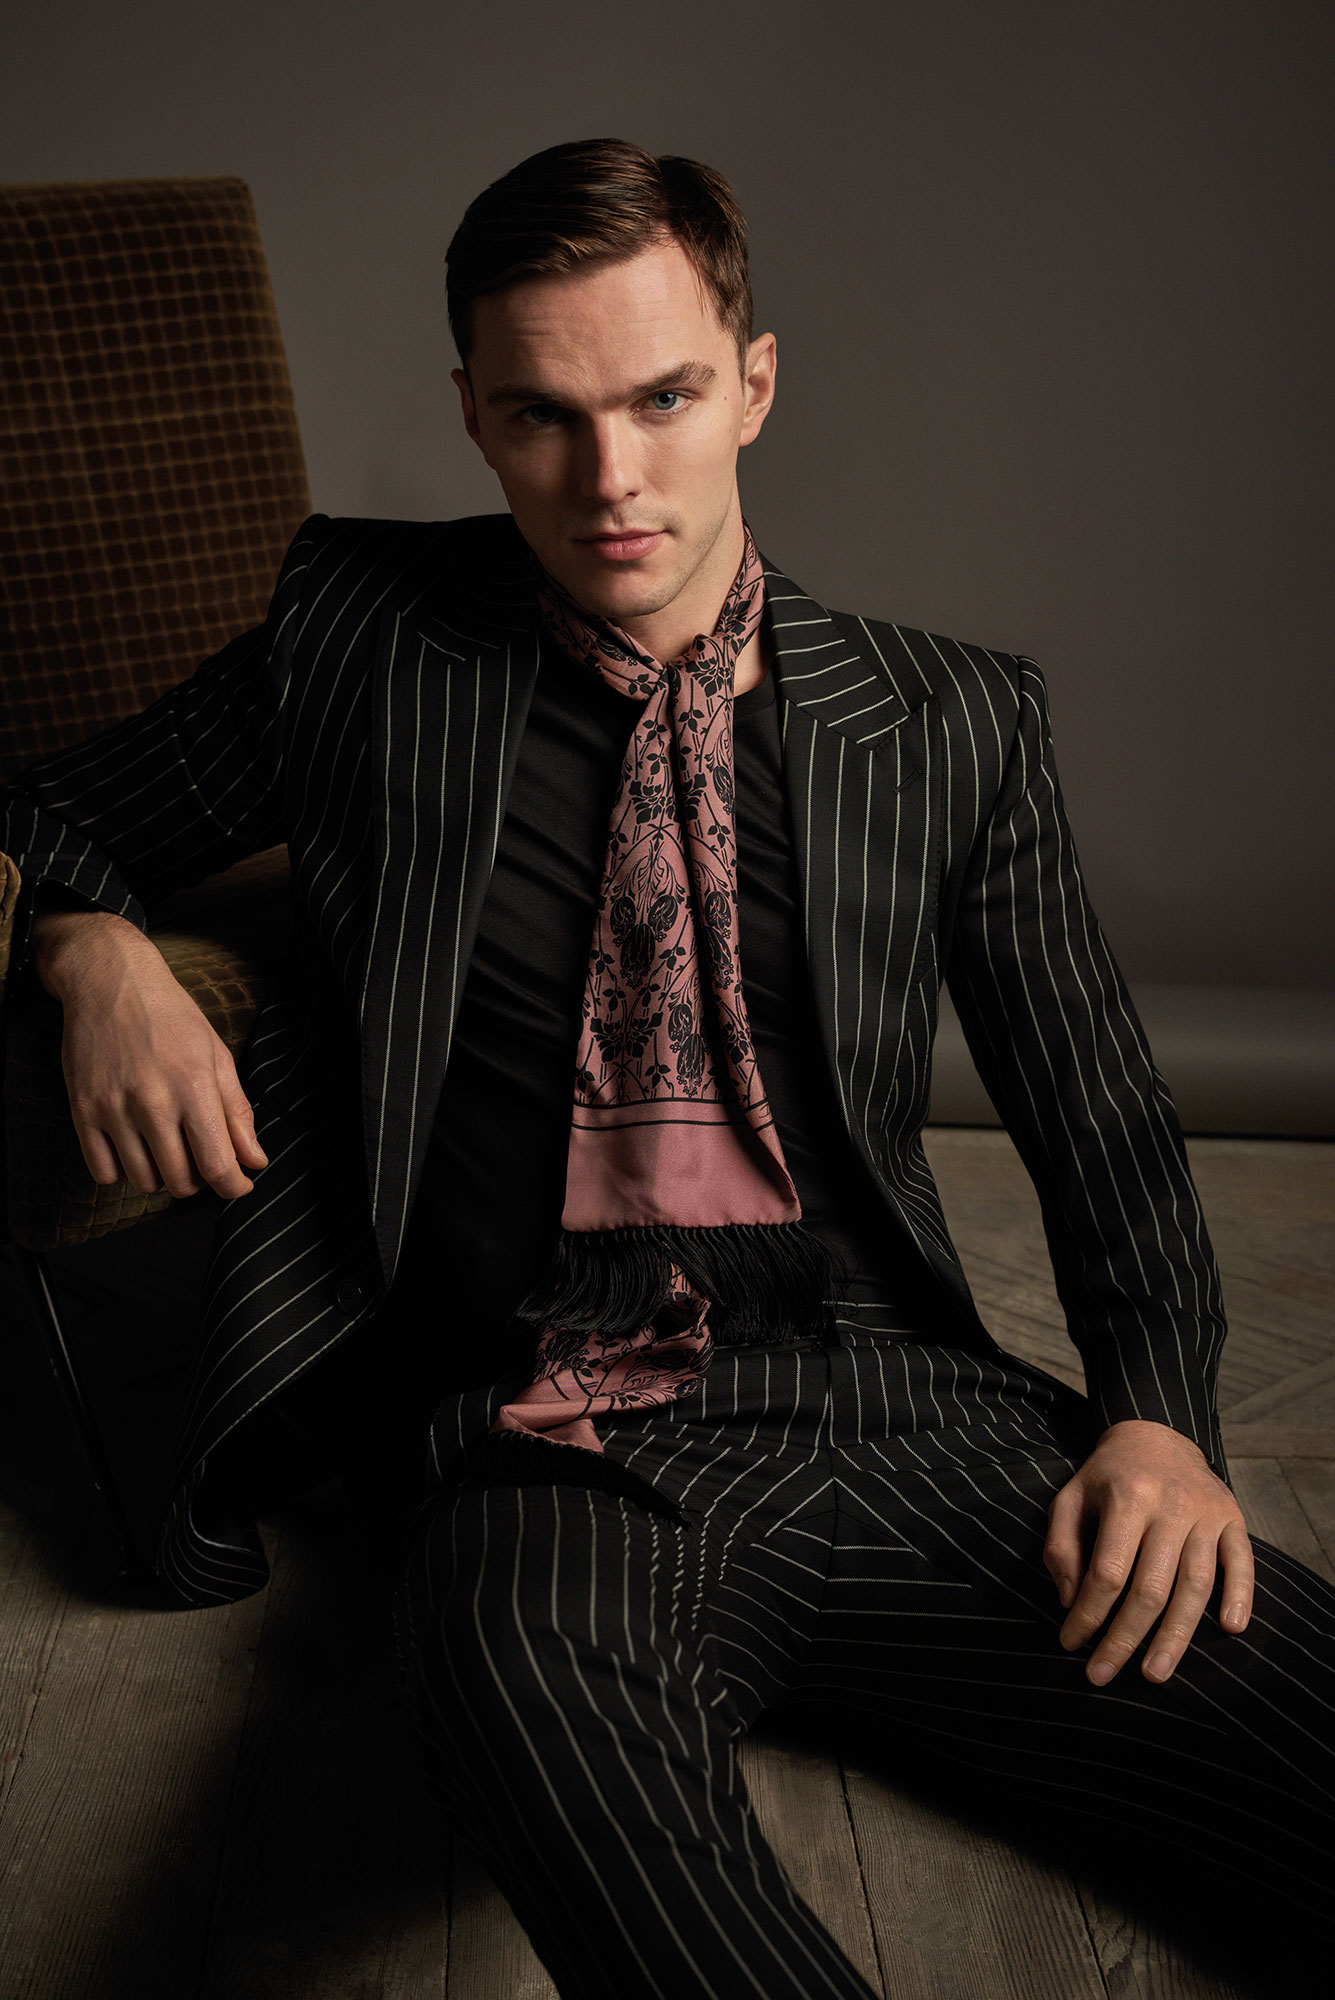 GQ Italia x Nicholas Hoult April 2019 | Michelangelo di Battista | GQ Italia | Nicolò Andreoni | Numerique Retouch Photo Retouching Studio